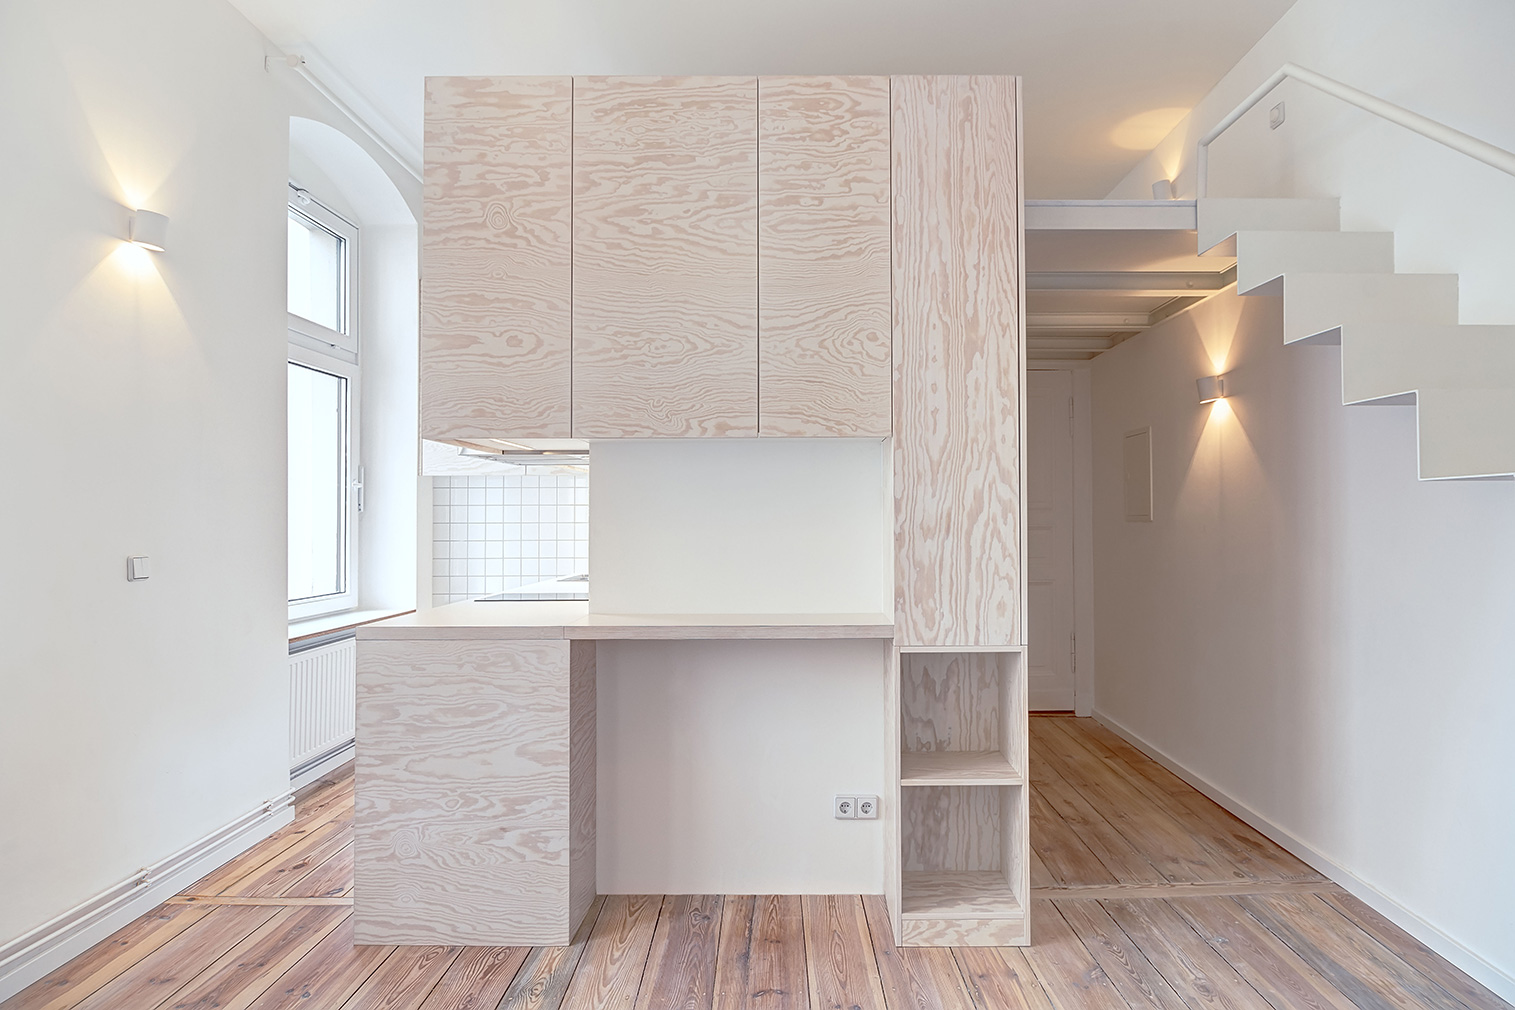 Micro home apartment designed by Paola Bagna